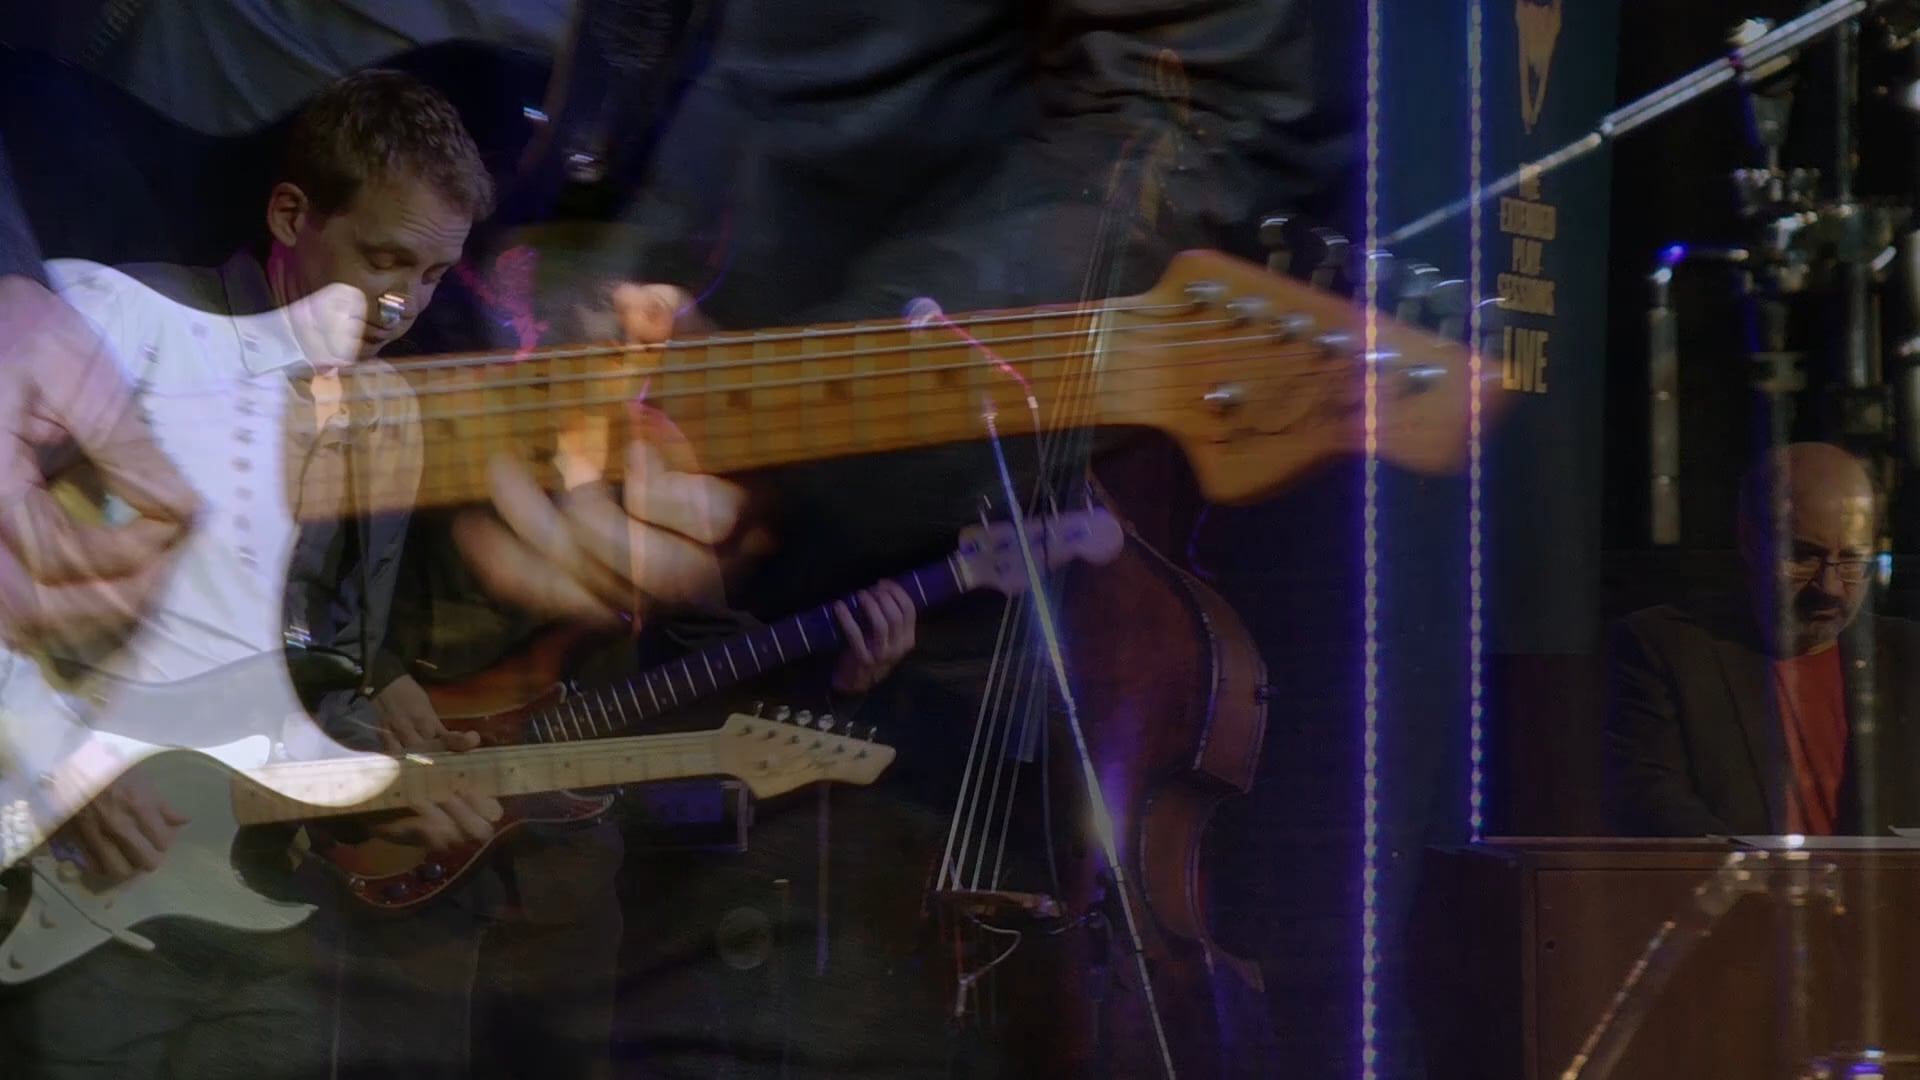 'The Reverend' - Julien Kasper with The Jesse Williams Quartet - from The Extended Play Sessions